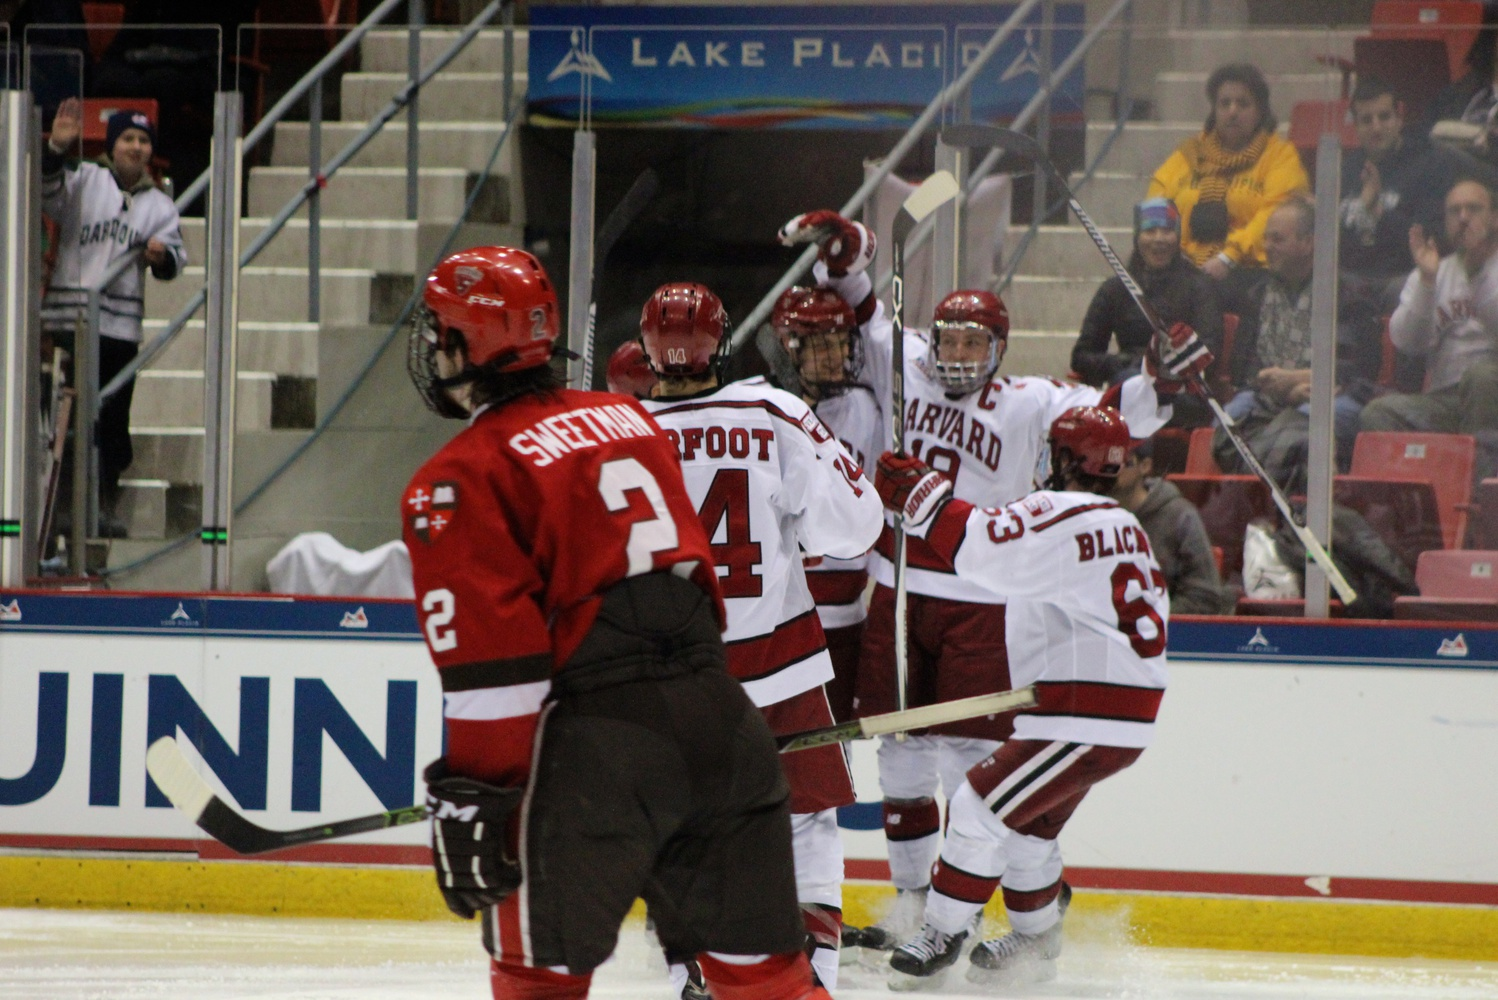 March 18: Vesey celebrates after opening the scoring in the ECAC Semifinals against St. Lawrence in Lake Placid. He also assisted on Kyle Criscuolo's overtime winner.